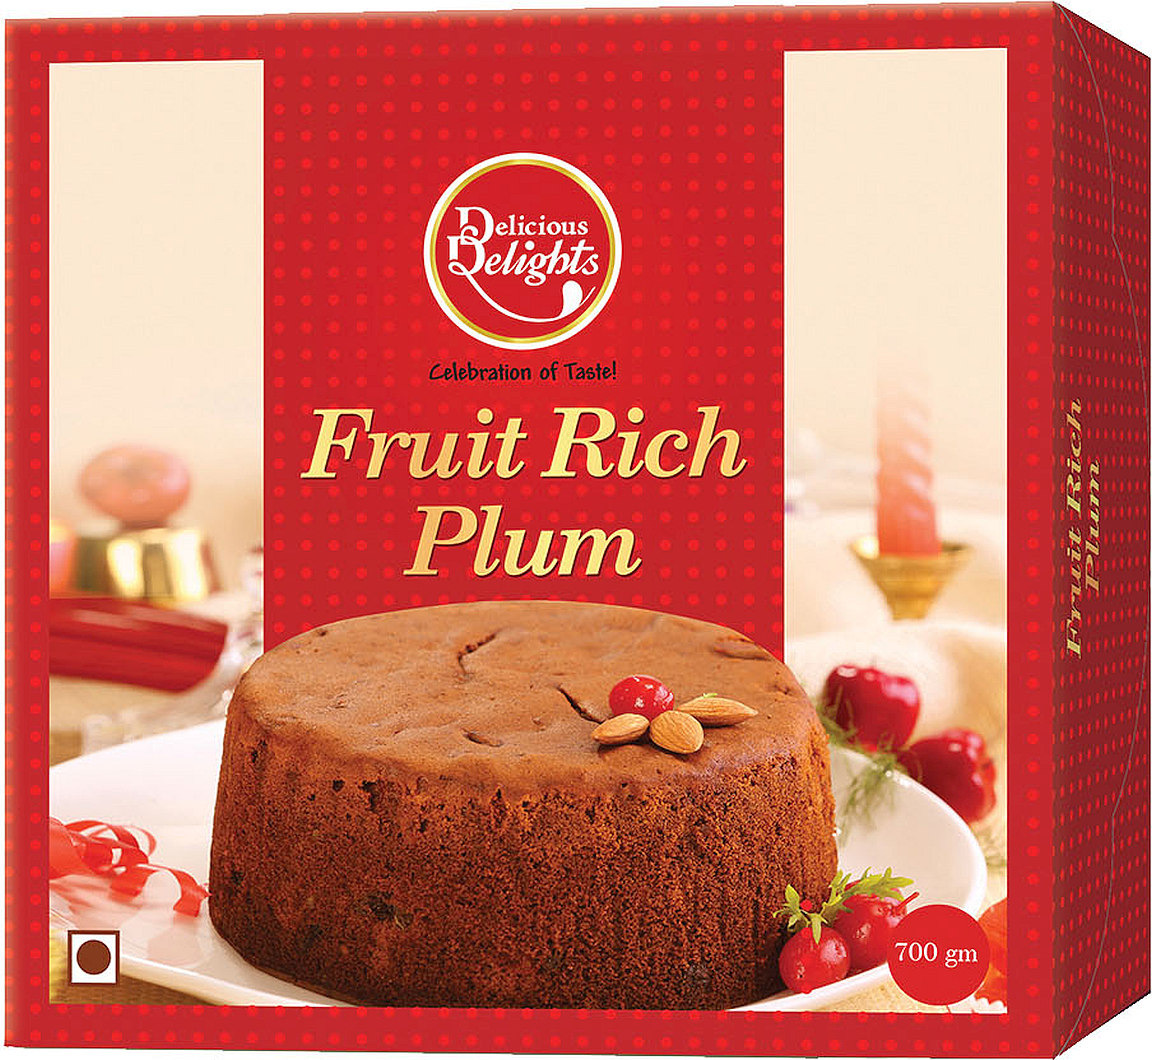 Daily Delight Fruit Rich Plum Cake